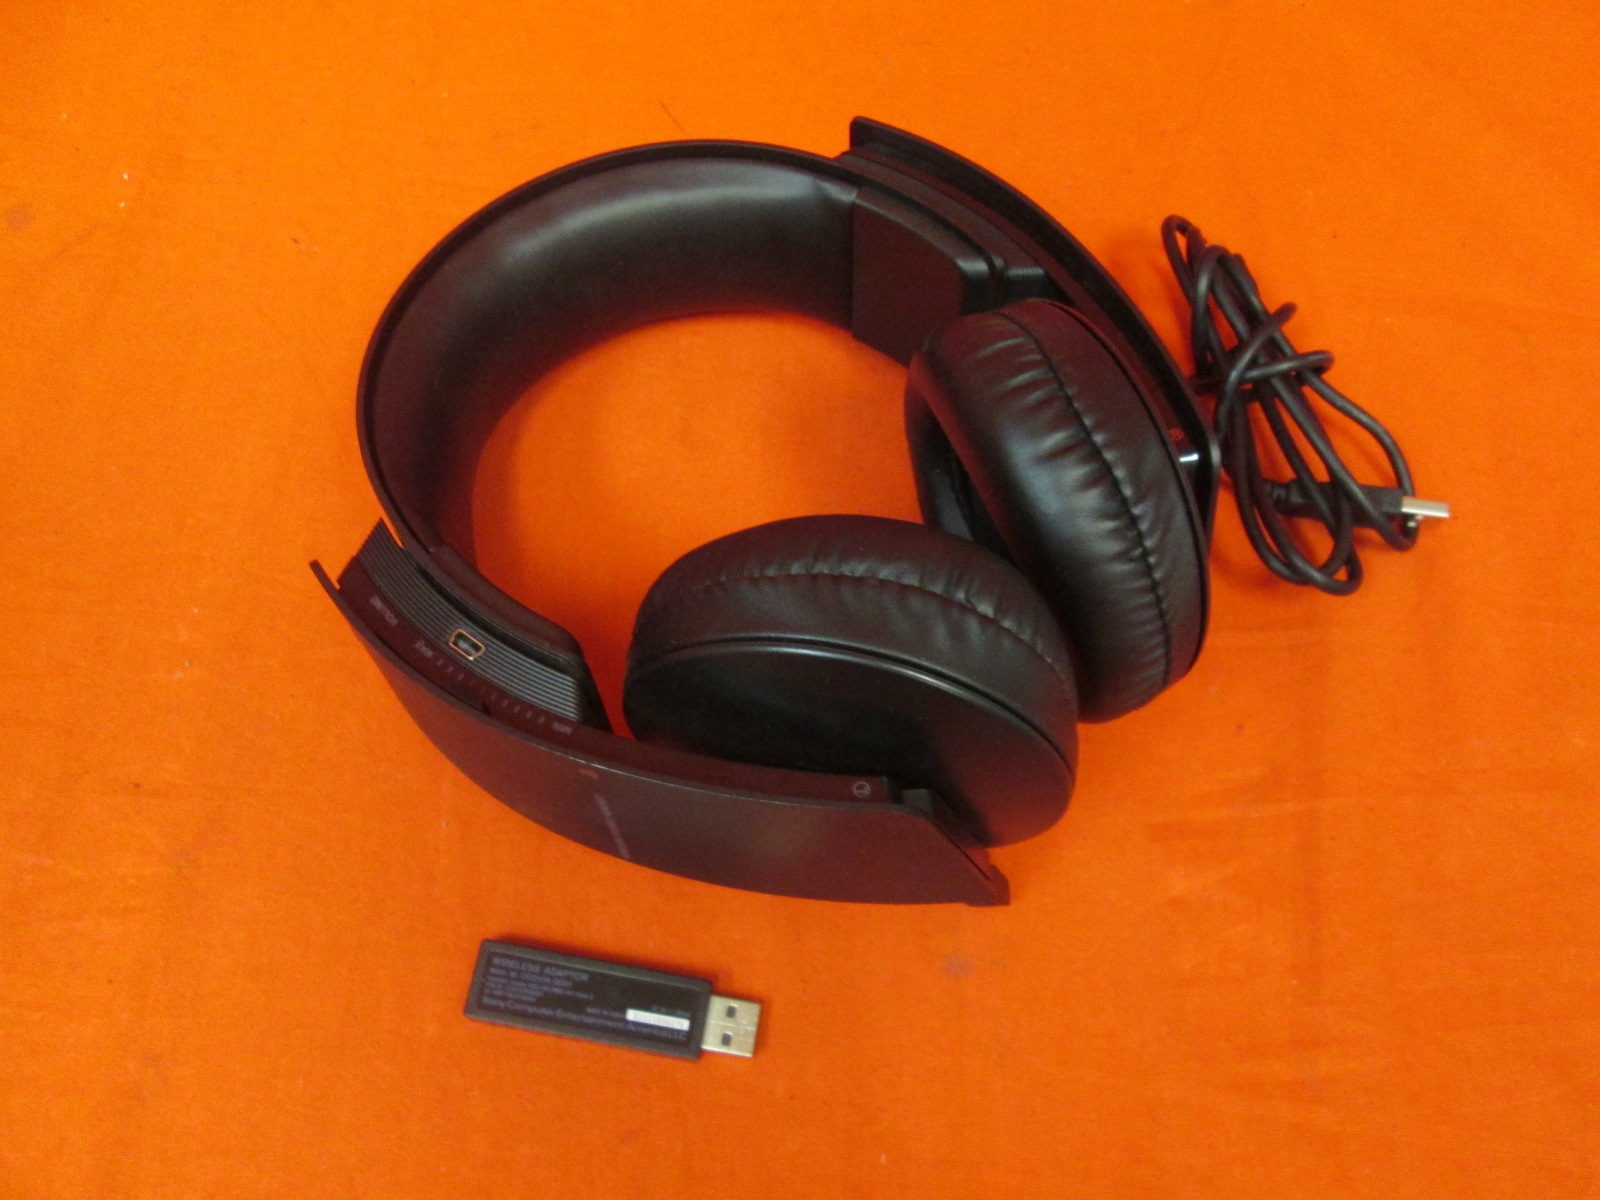 PlayStation Wireless Stereo Headset CECHYA-0080